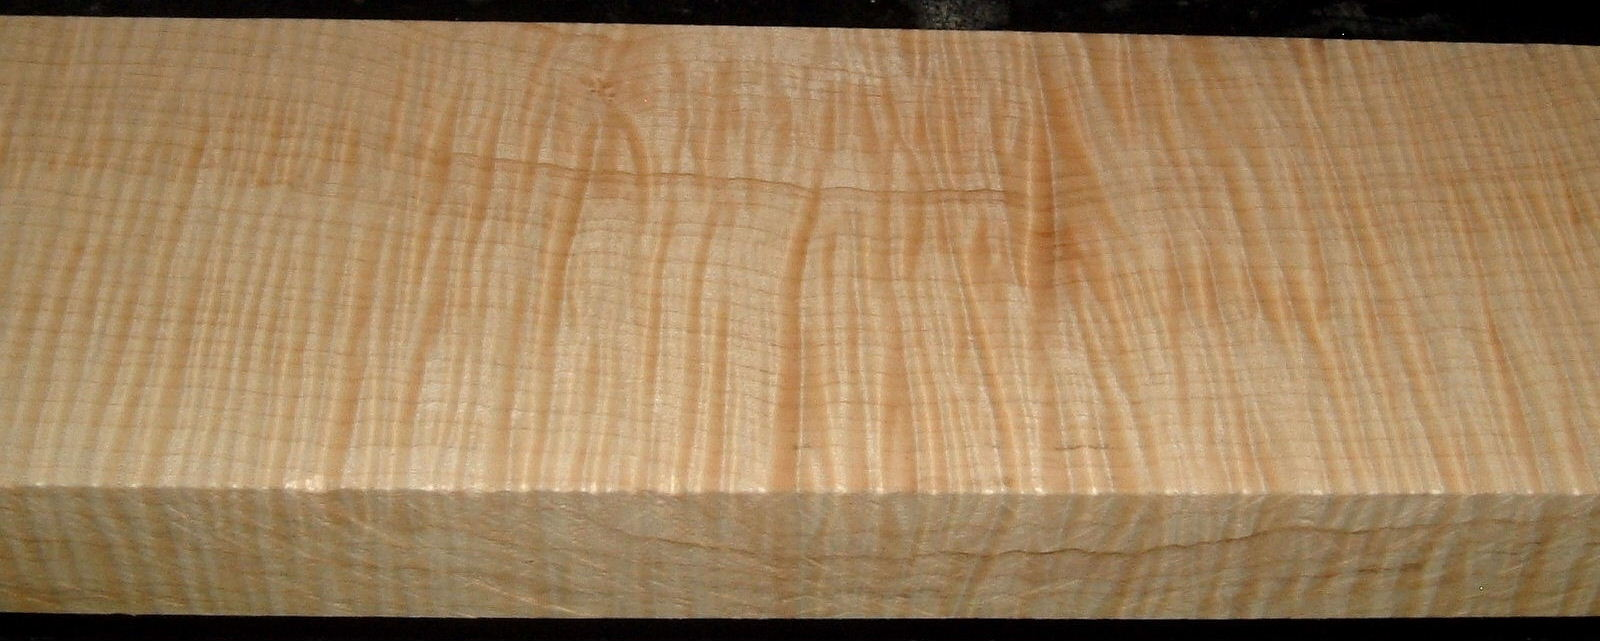 QS2001-11, 1-1/2x4-3/8x31+, Quartersawn Curly Maple